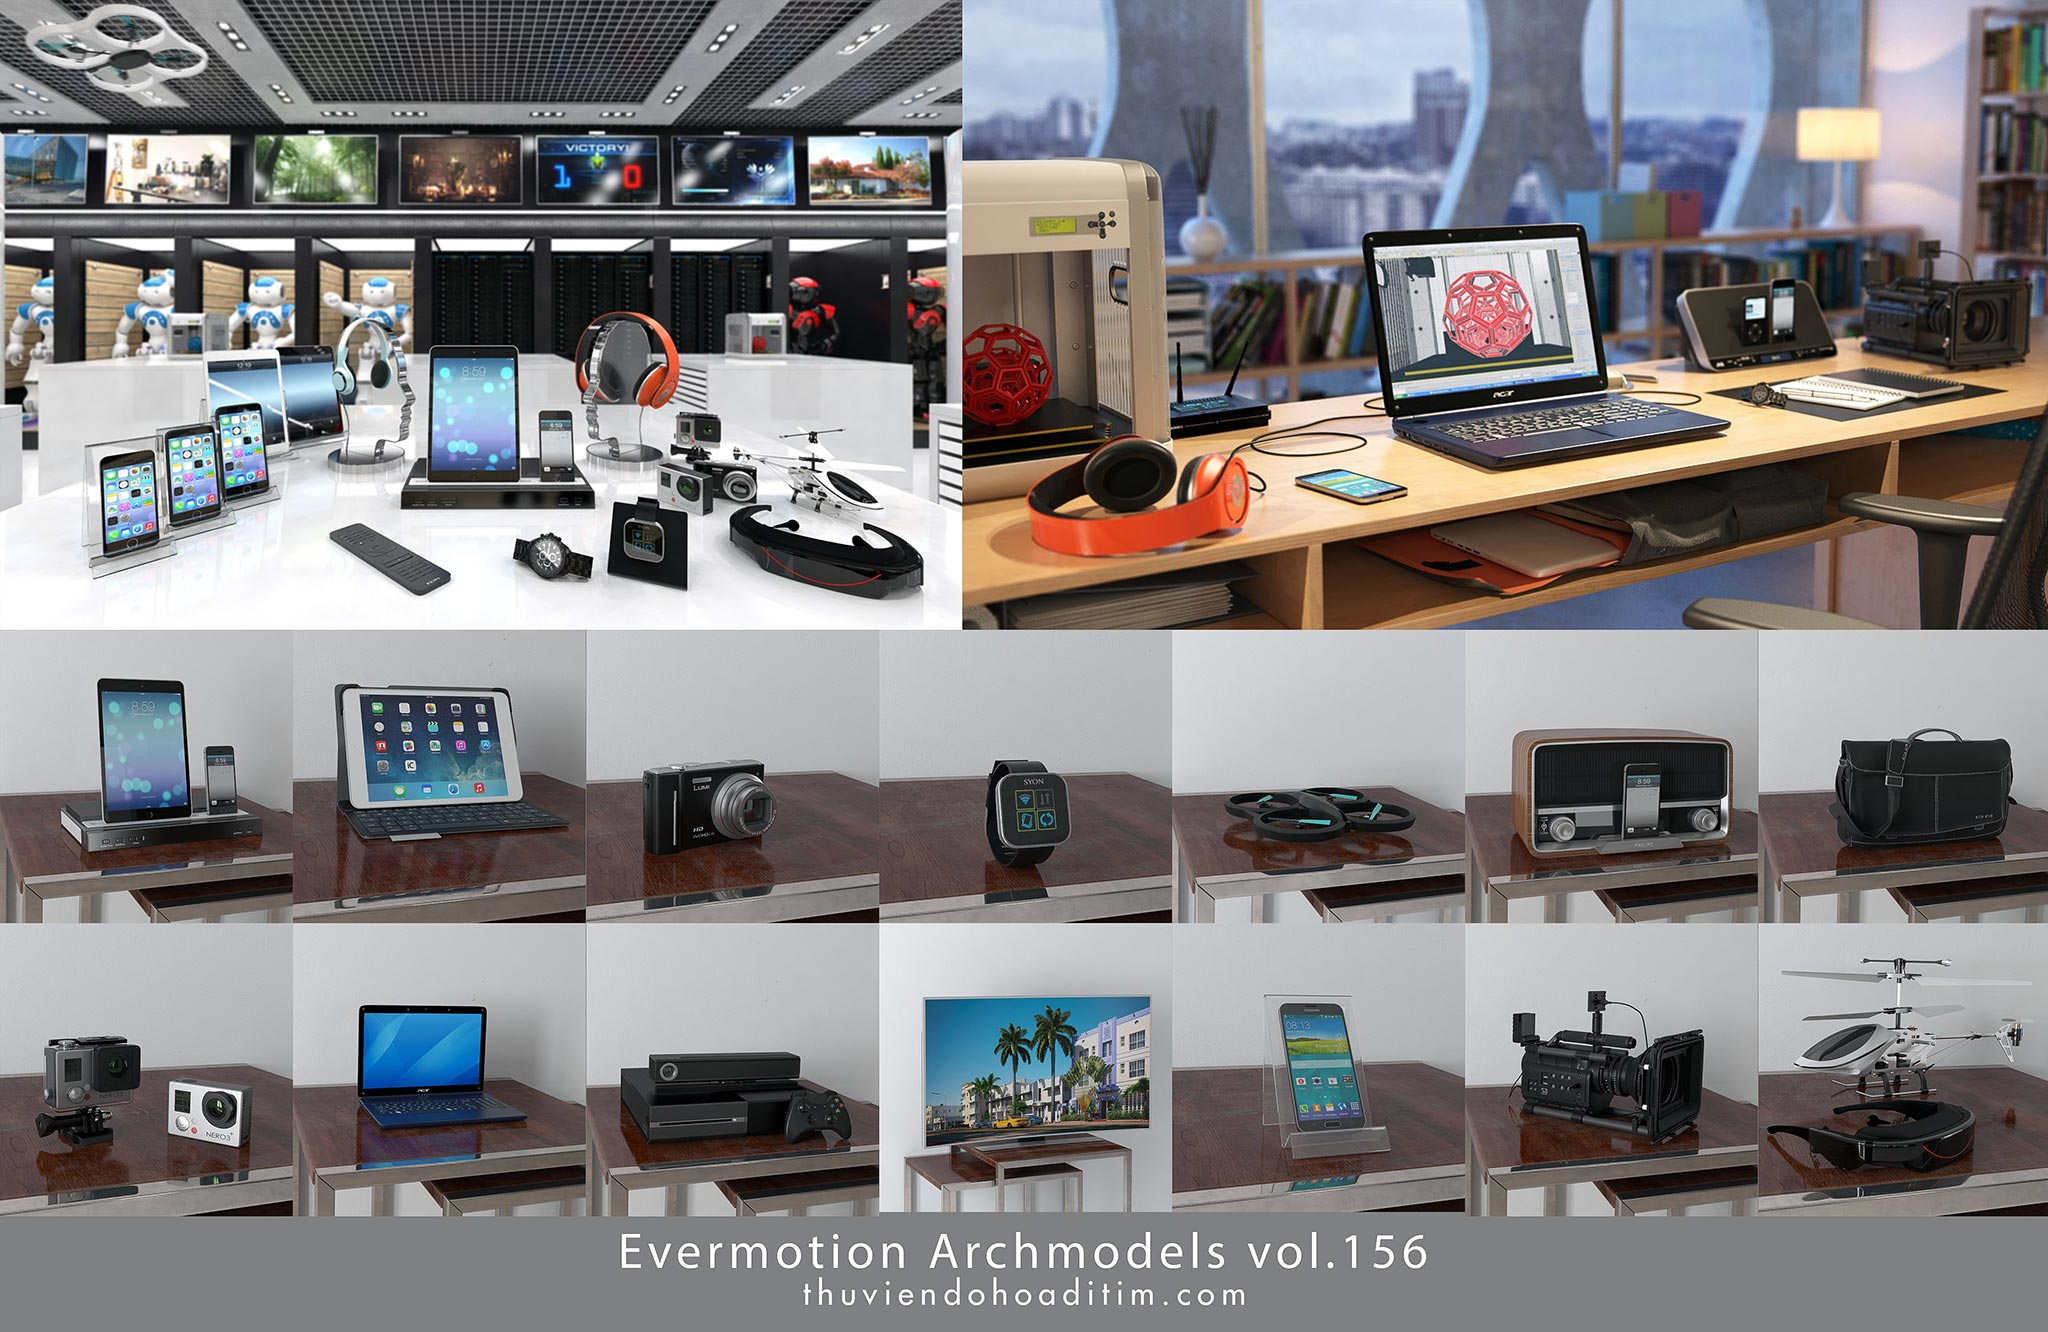 Evermotion Archmodels vol.156